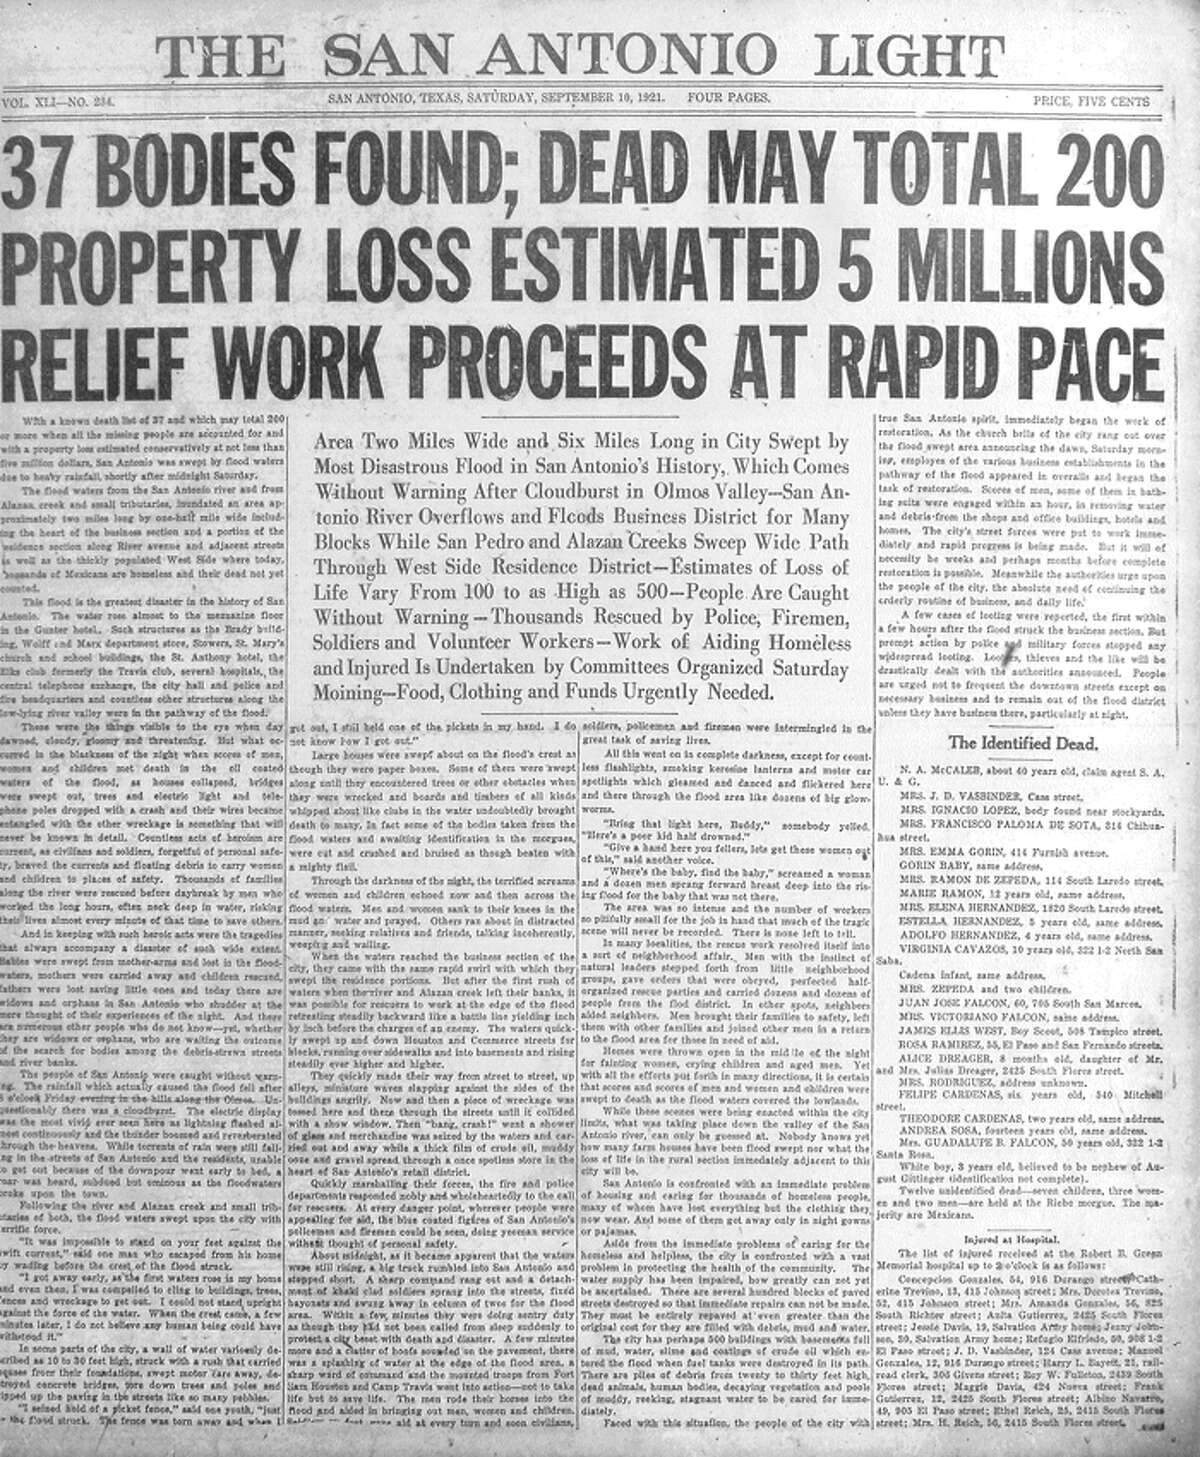 Sept. 10, 1921: The San Antonio Light fills the entire front page with news of the most disastrous flood in the history of San Antonio. The Light reports the flood,